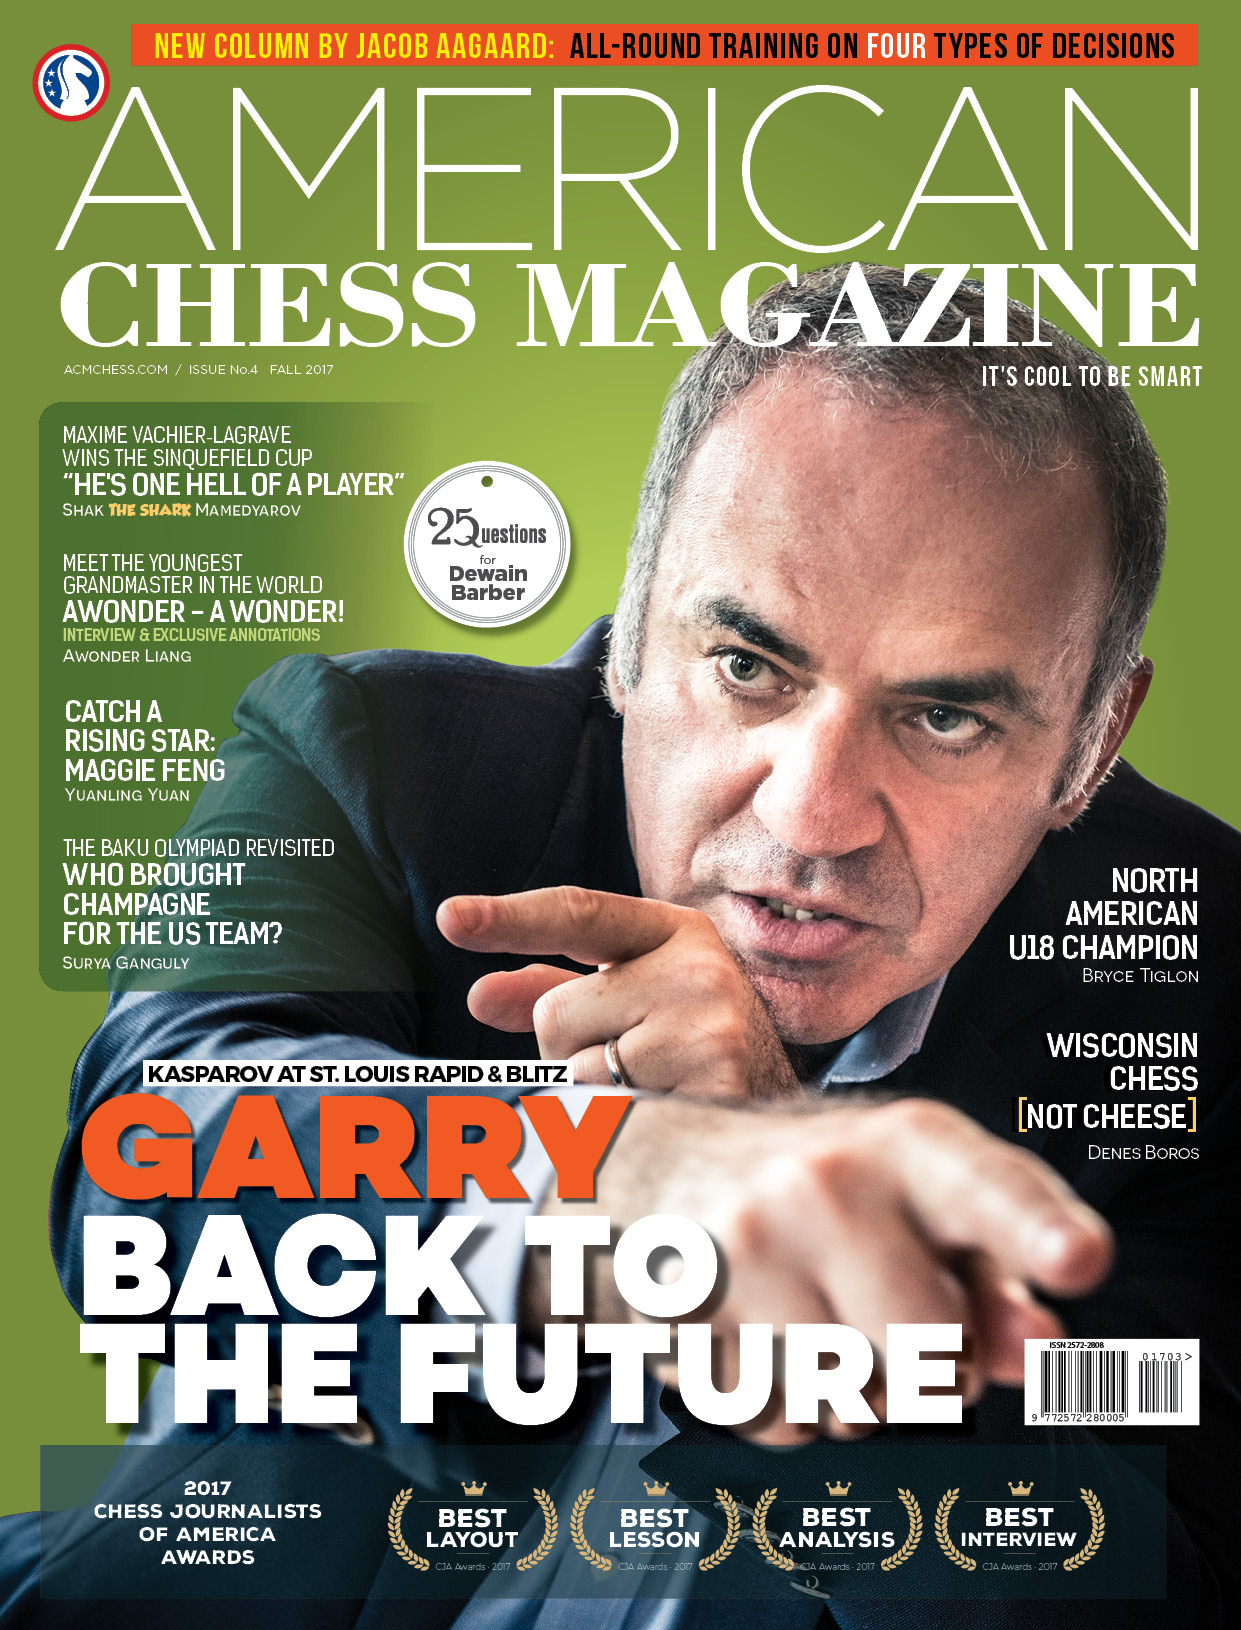 American Chess Magazine - Issue #4